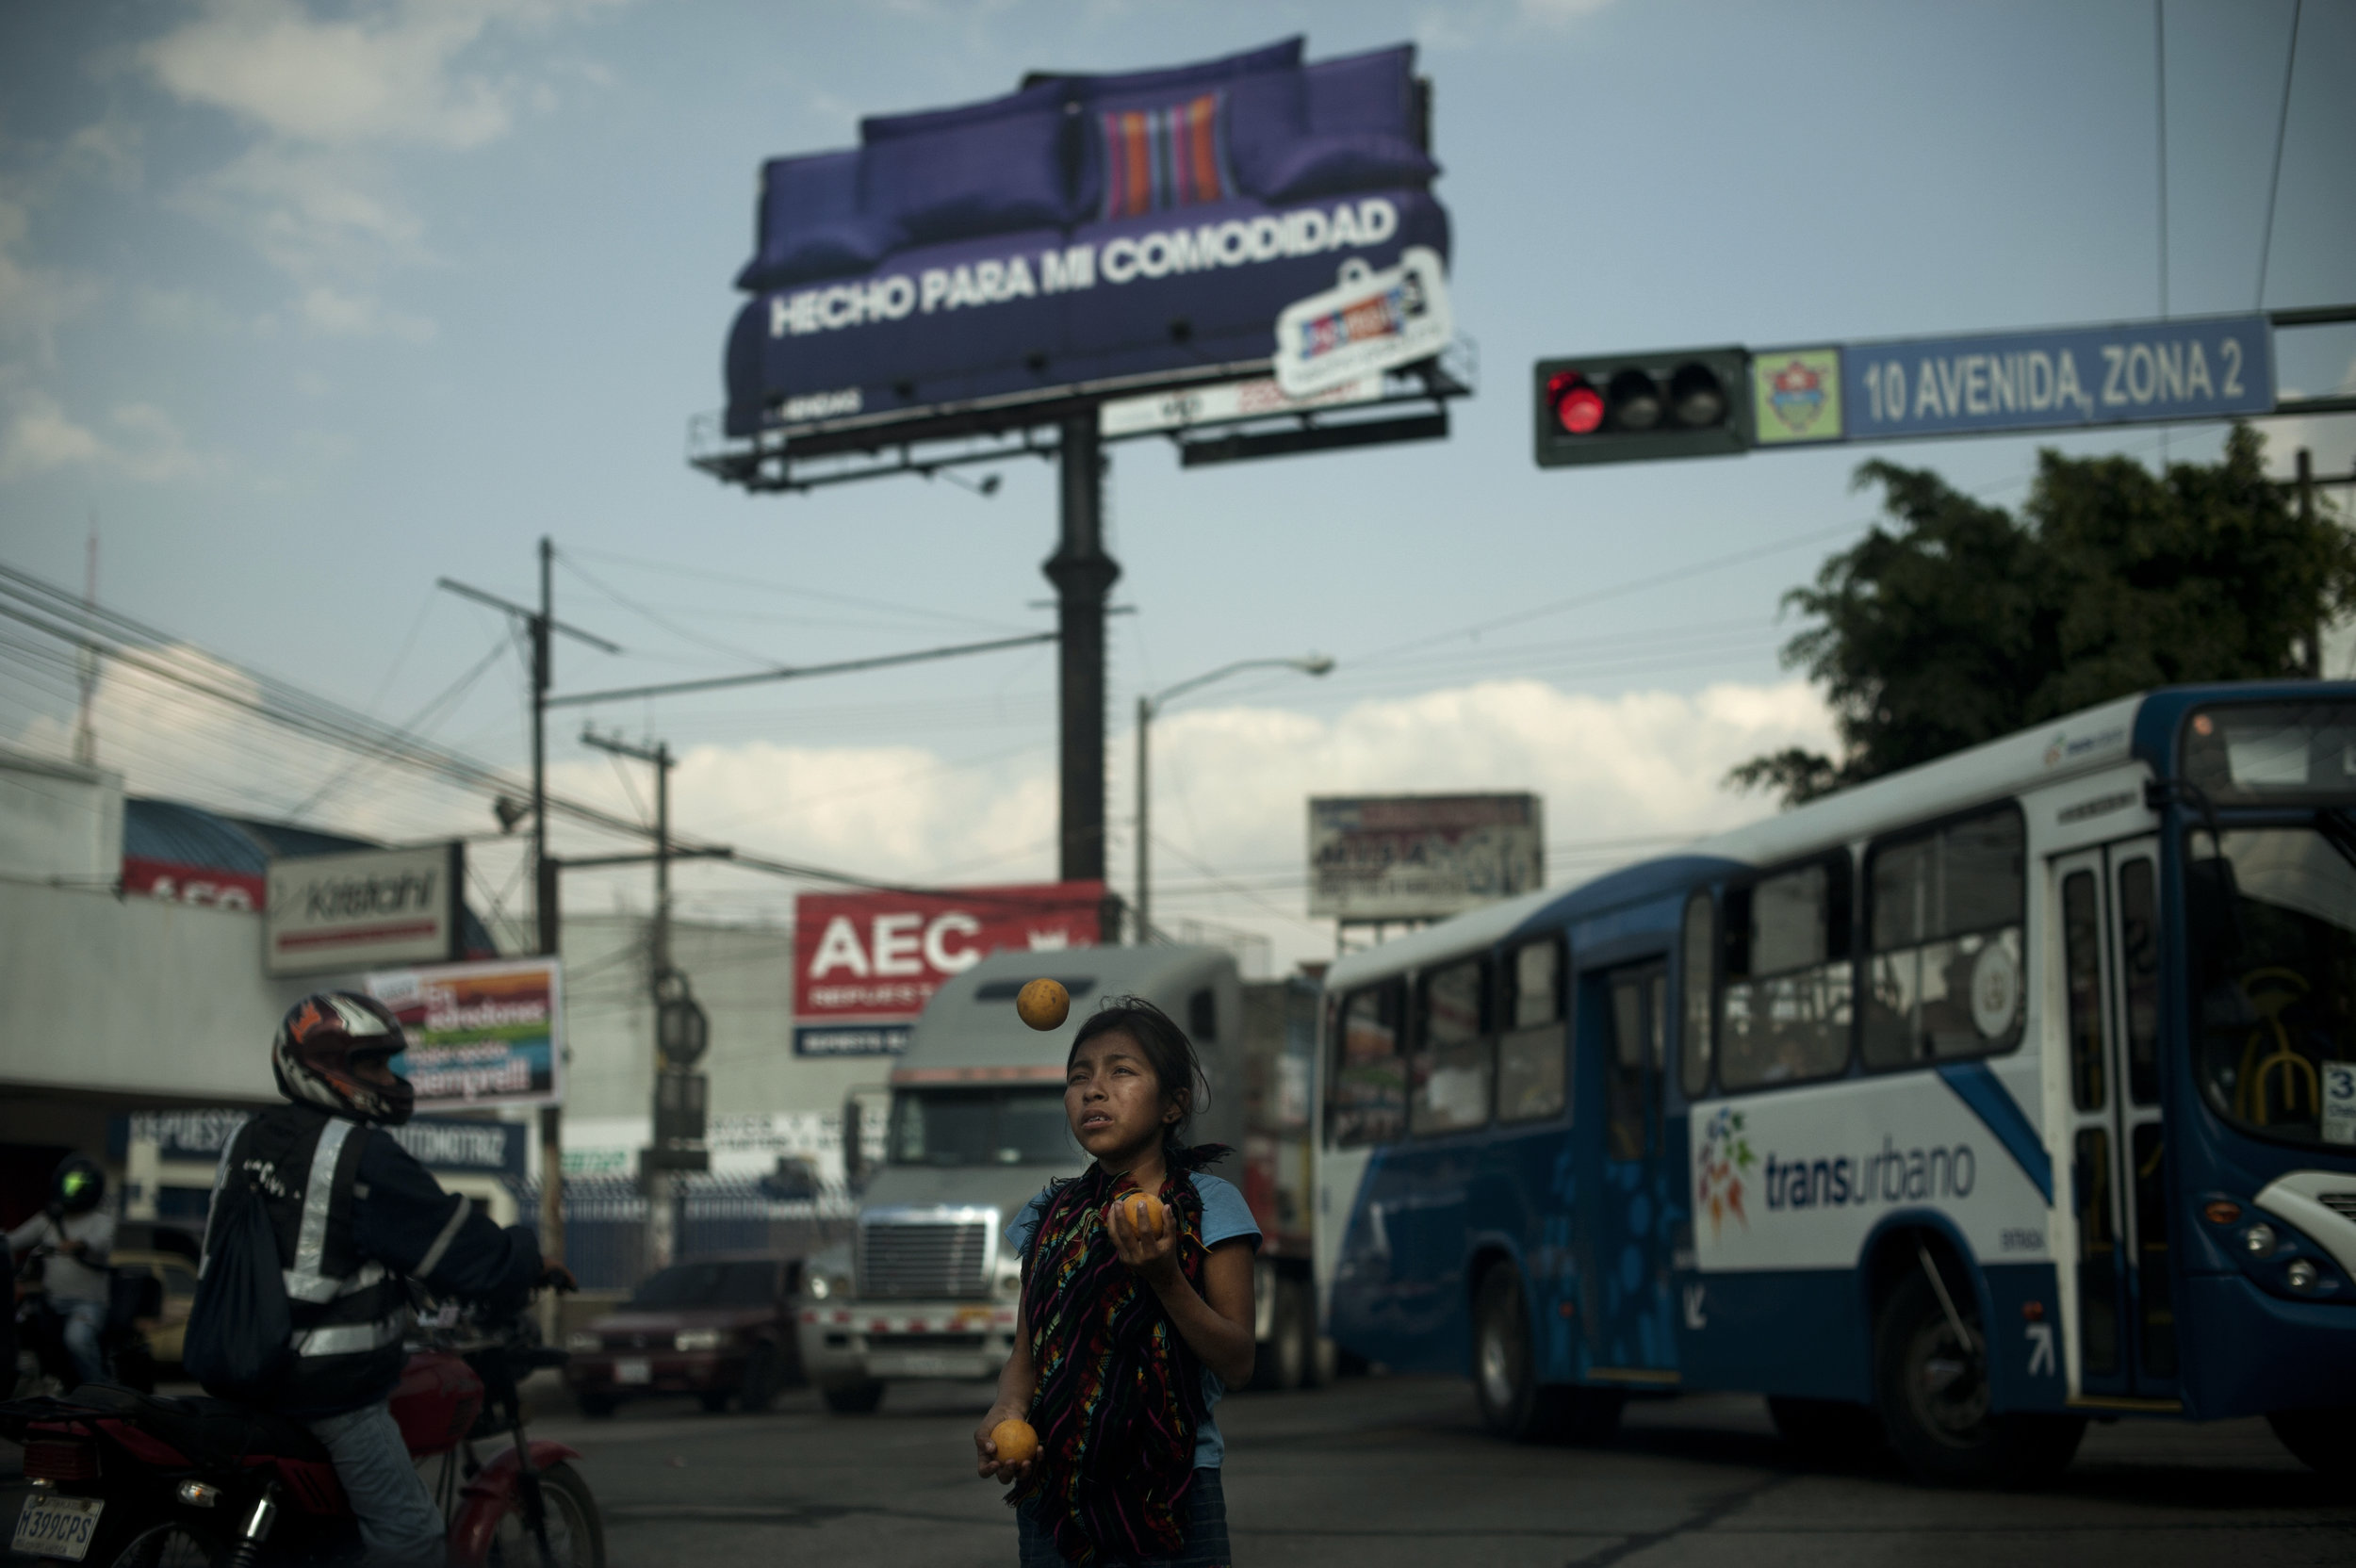 A young girl juggles oranges for money at a stoplight in Guatemala City traffic. 